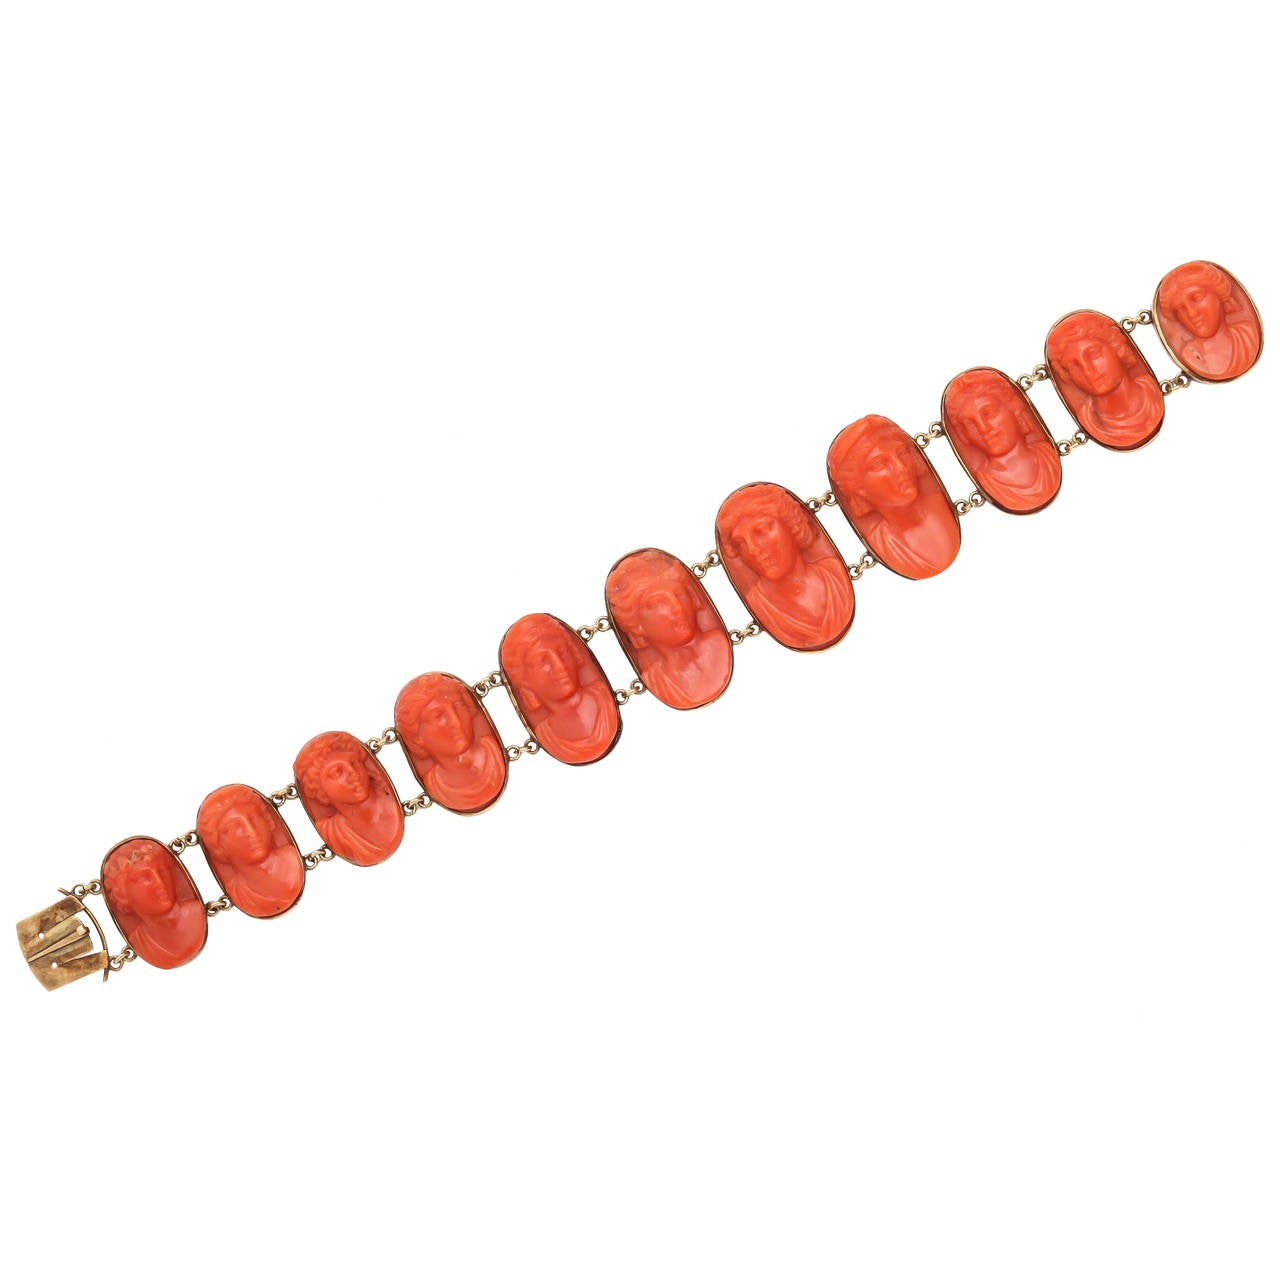 Designed as a graduated line of oval coral cameos carved in high relief, each link framed in gold and connected by small gold chains.  Circa 1870, unmarked.  7 in. (17.8 cm.) long; largest cameo 7/8 in. (2.2 cm.) long, including mount.